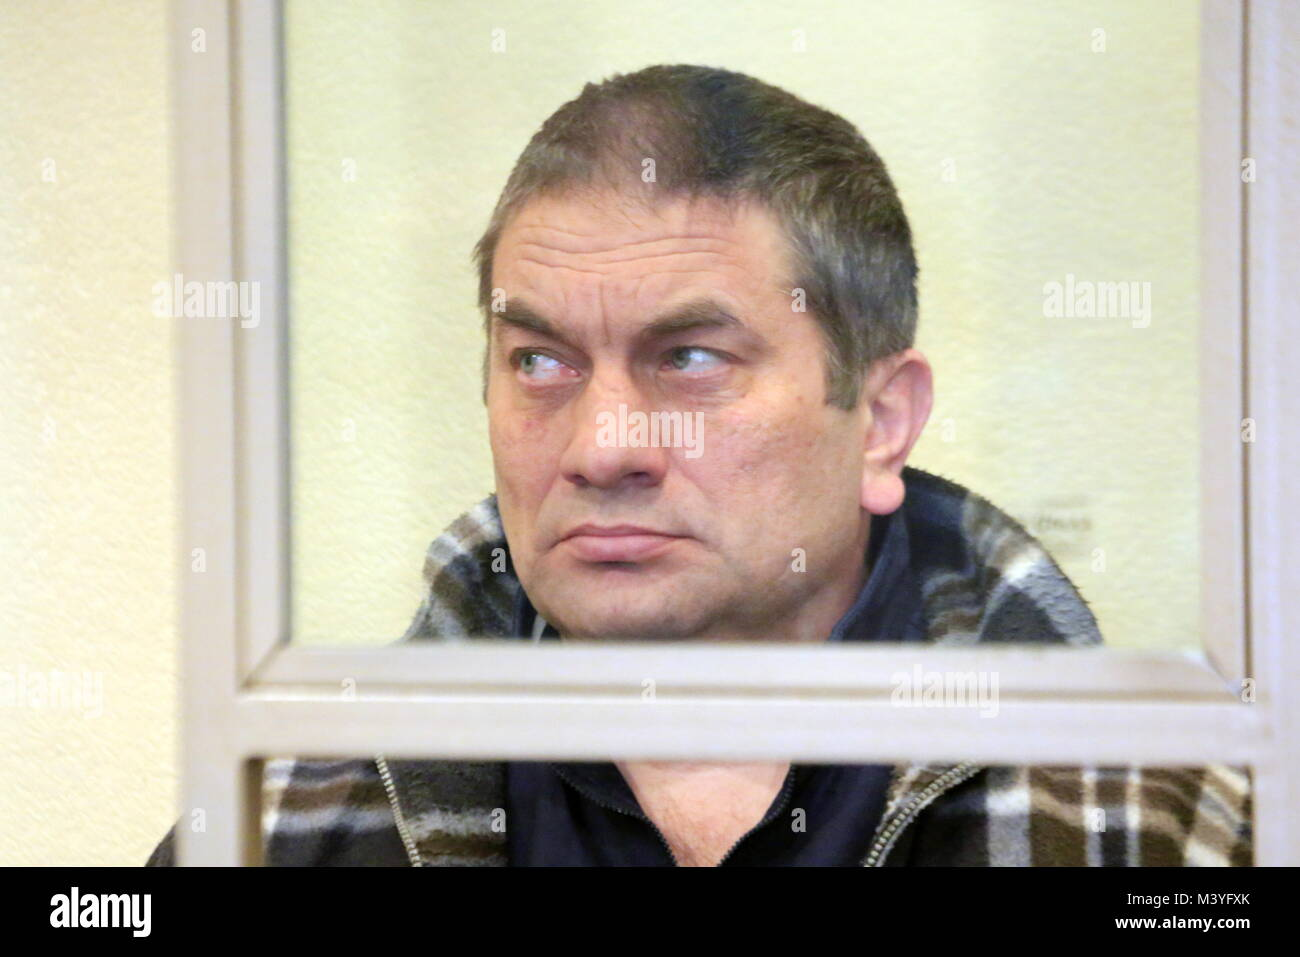 Rostov On Don, Russia. 13th Feb, 2018. ROSTOV-ON-DON, RUSSIA - FEBRUARY 13, 2018: Badruddi Daudov charged with participation - Stock Image